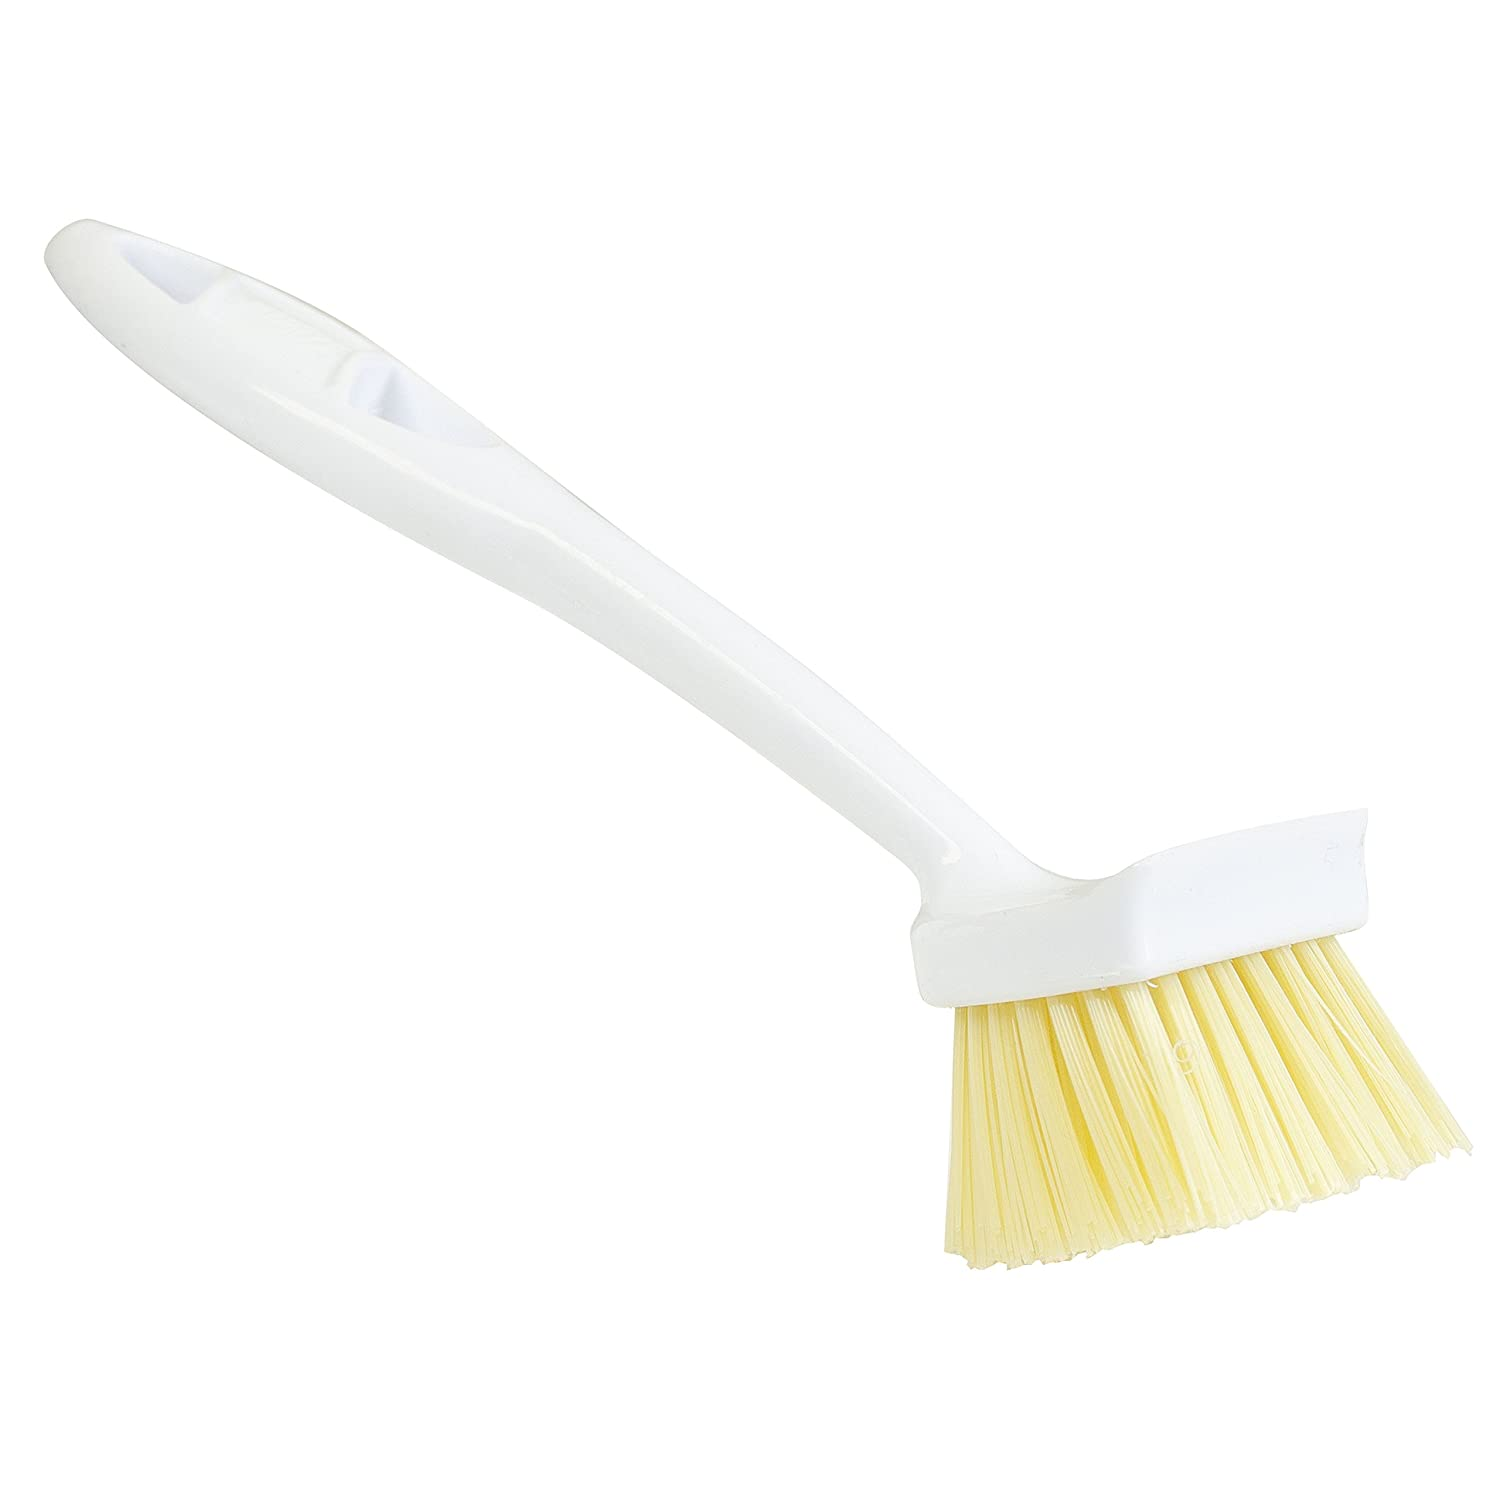 Amazon.com: Quickie Vegetable Brush: Home & Kitchen